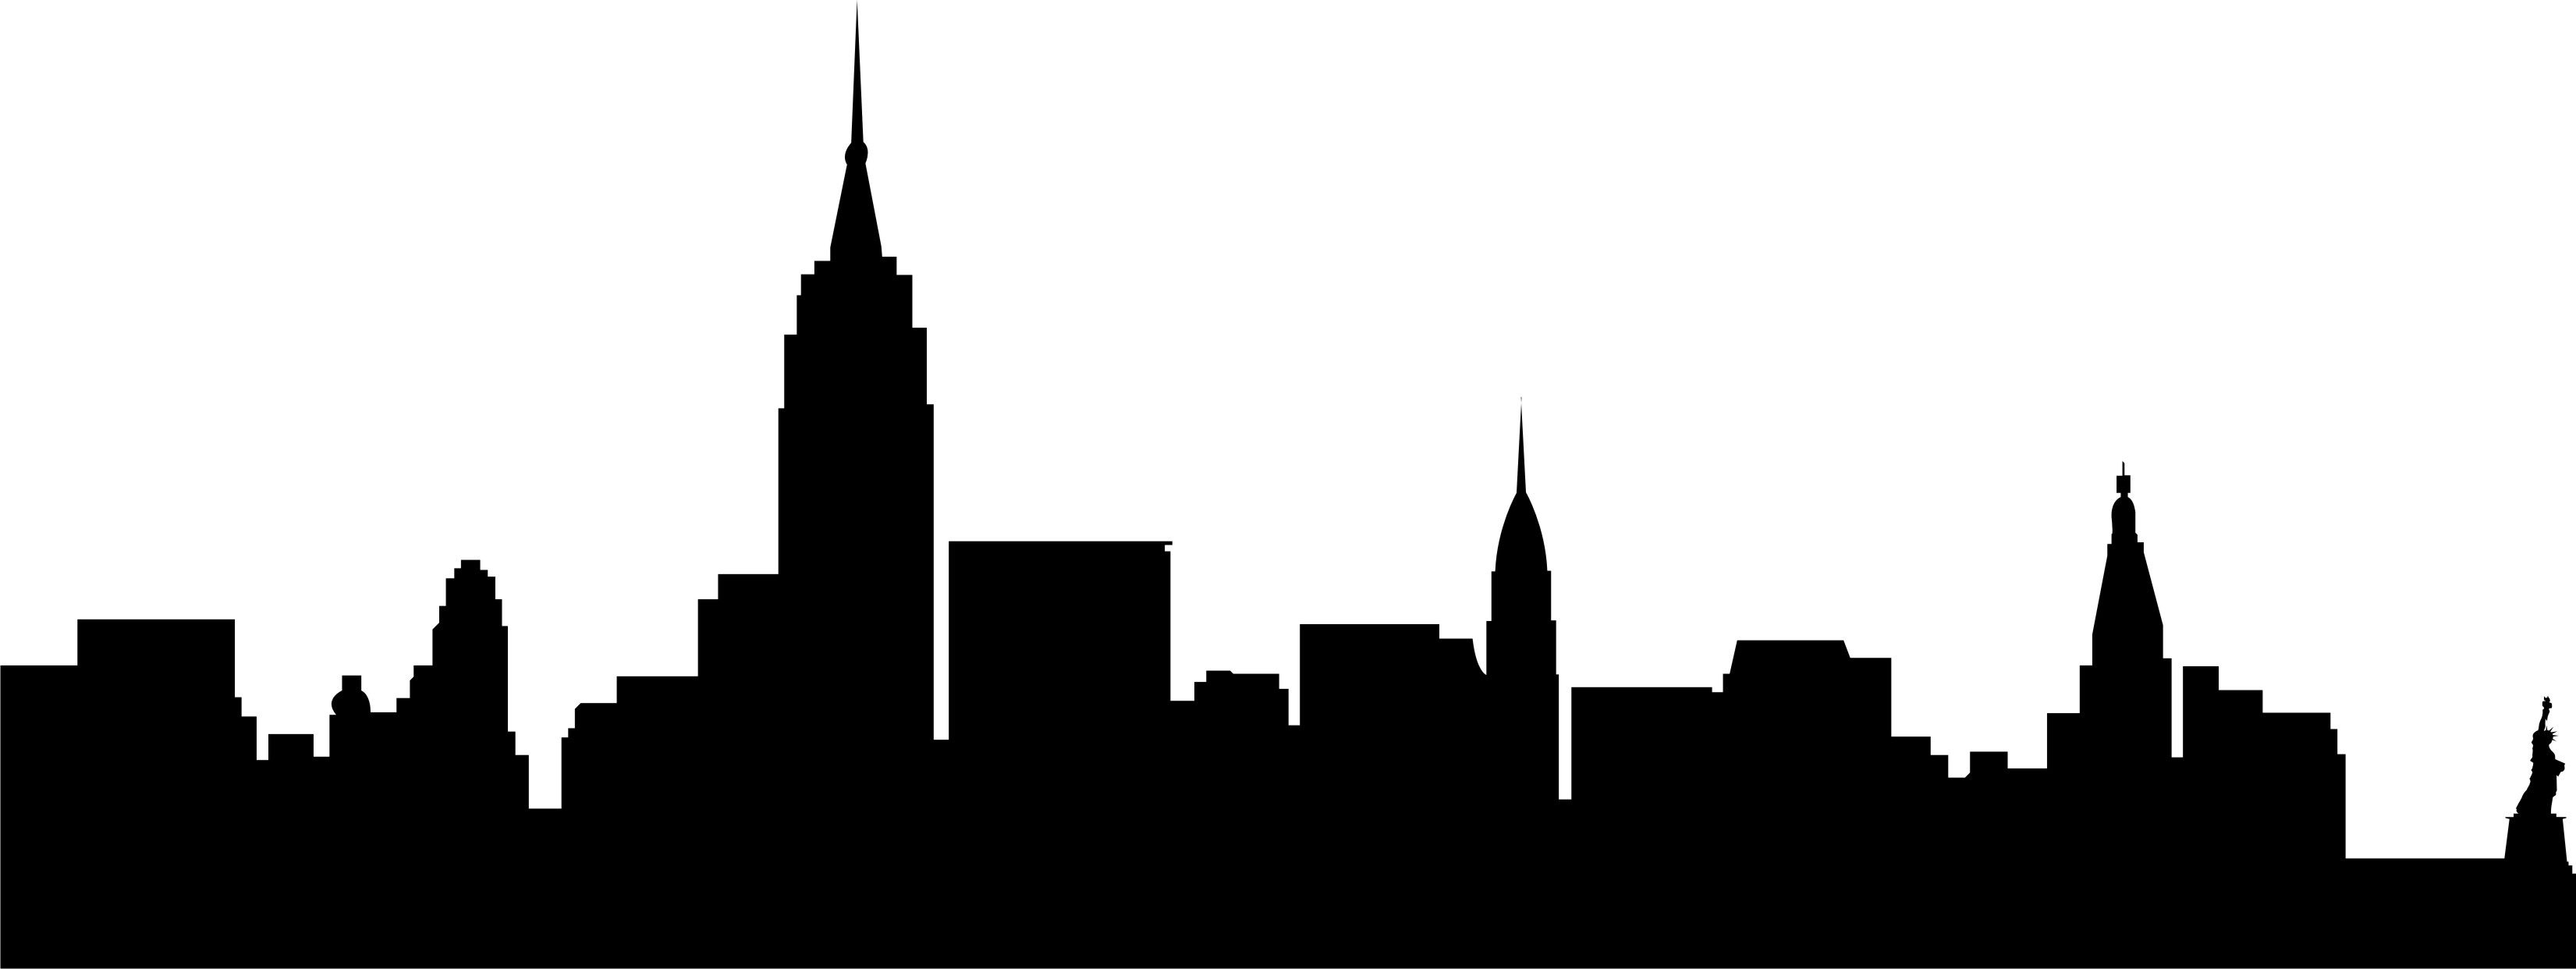 Nyc skyline silhouette clipart black and white clip freeuse stock 3302x1242 Cityscape Clipart Nyc Skyline | ADAM/DAVE\'S WEDDING in ... clip freeuse stock